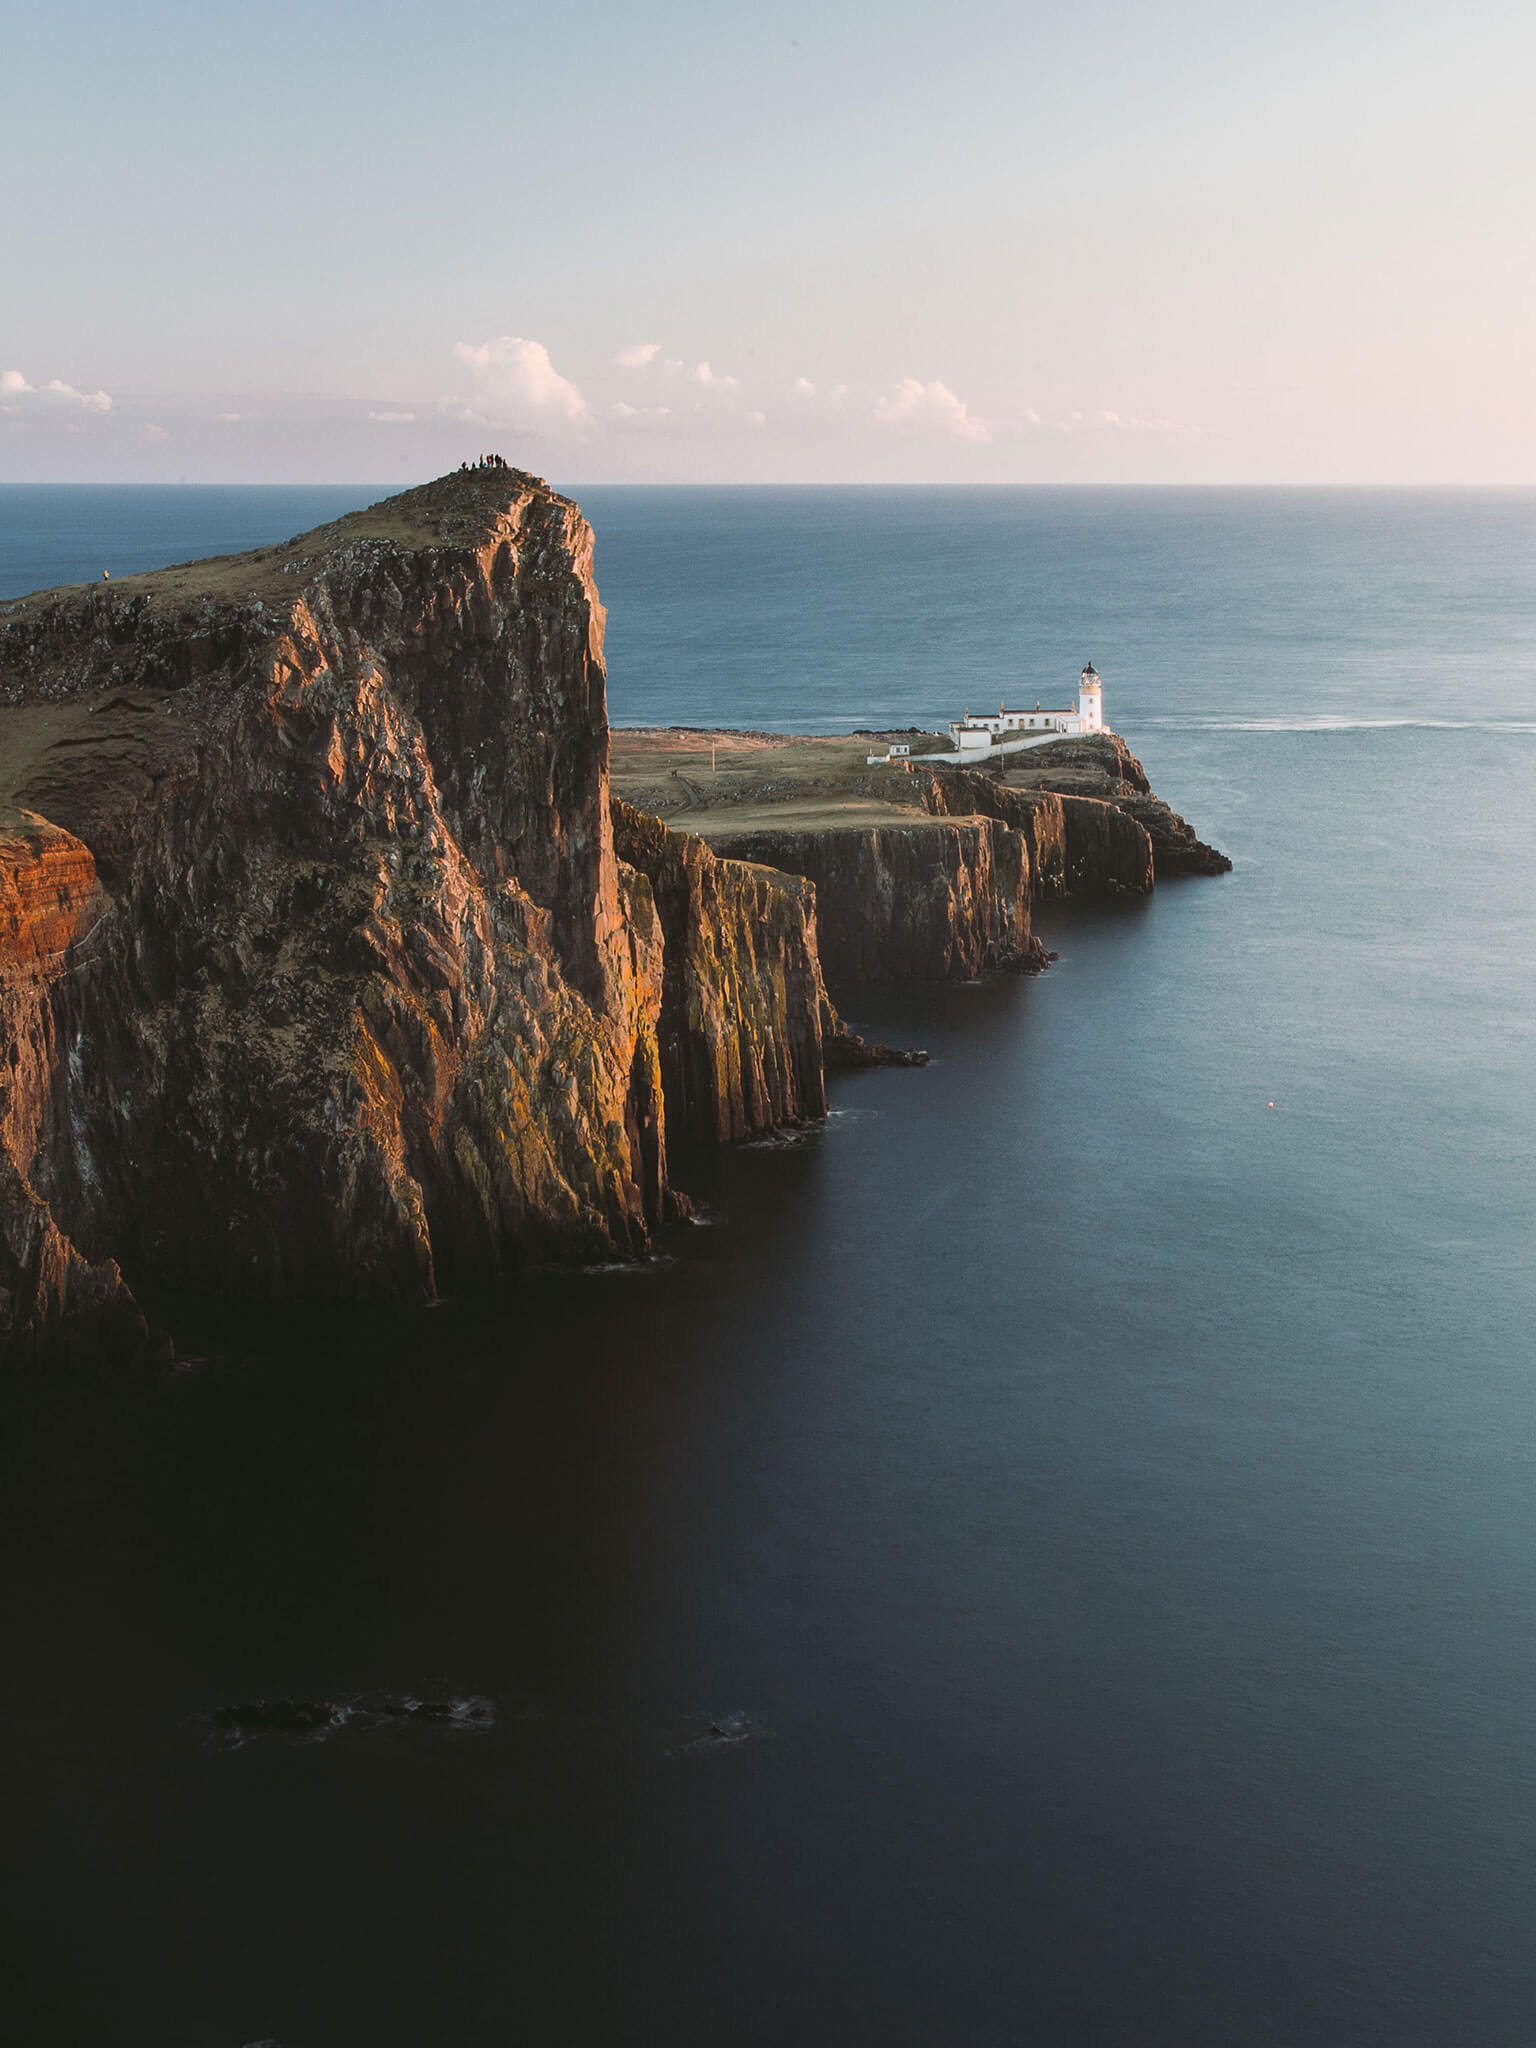 View of Neist Lighthouse and cliff edge.